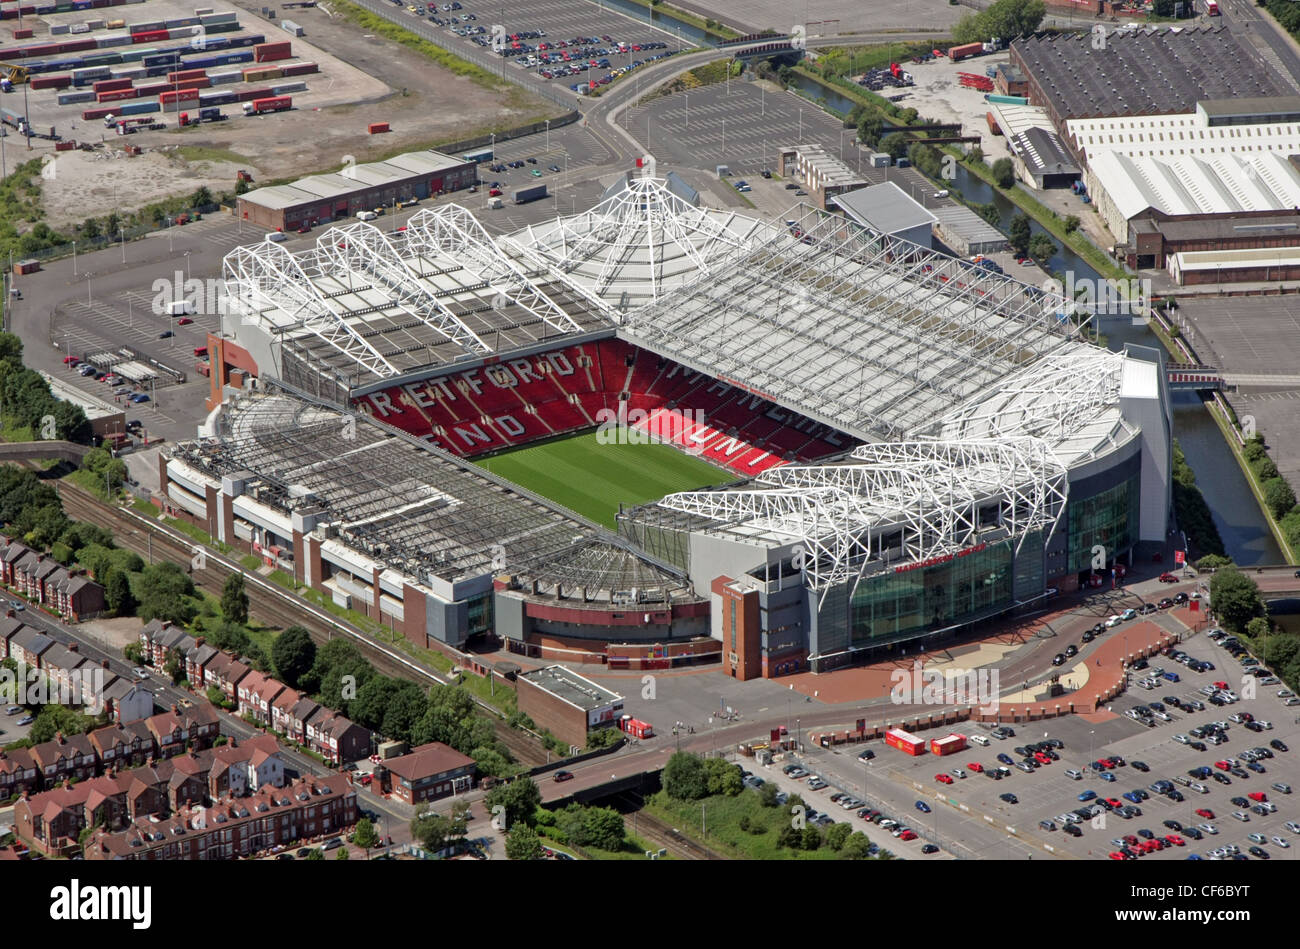 Aerial view of Manchester United FC Old Trafford Stadium - Stock Image